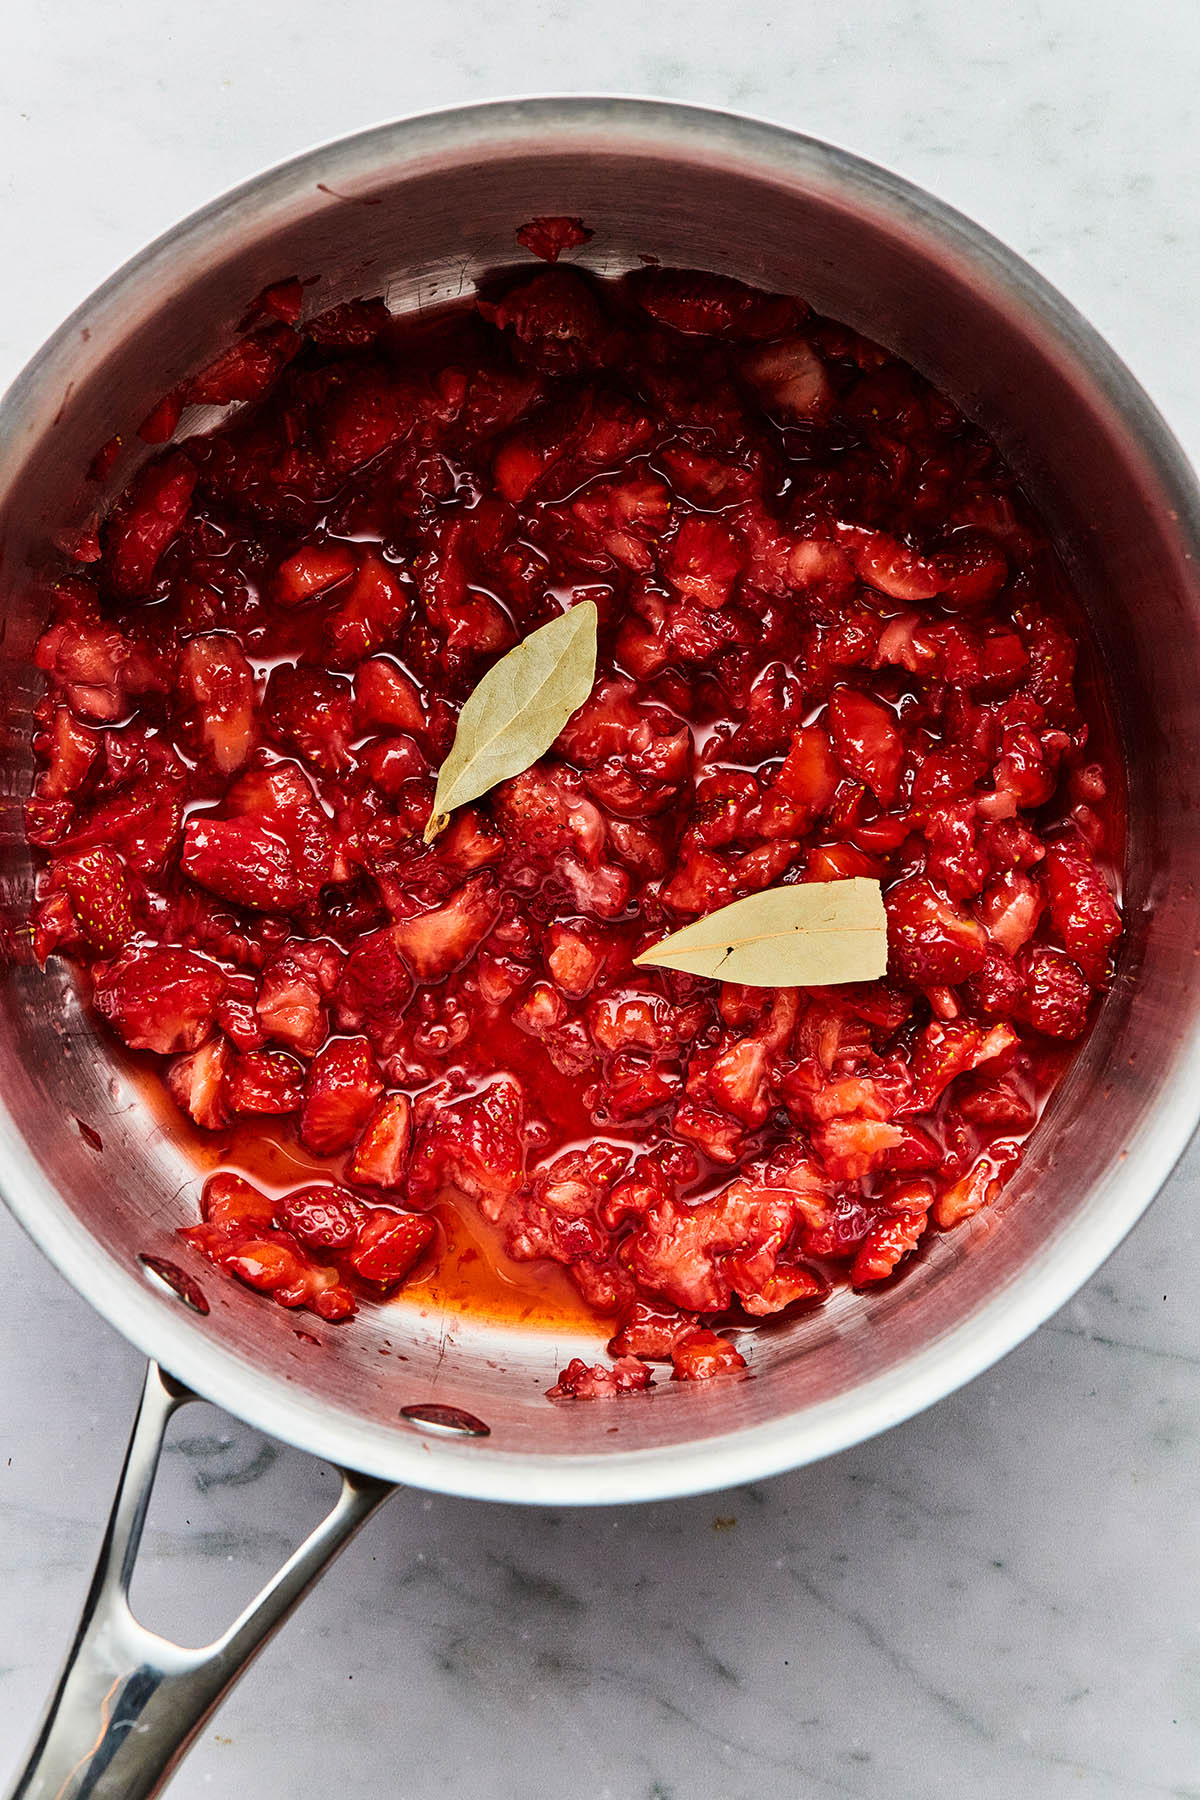 Mashed strawberries and two bay leaves in a pot.